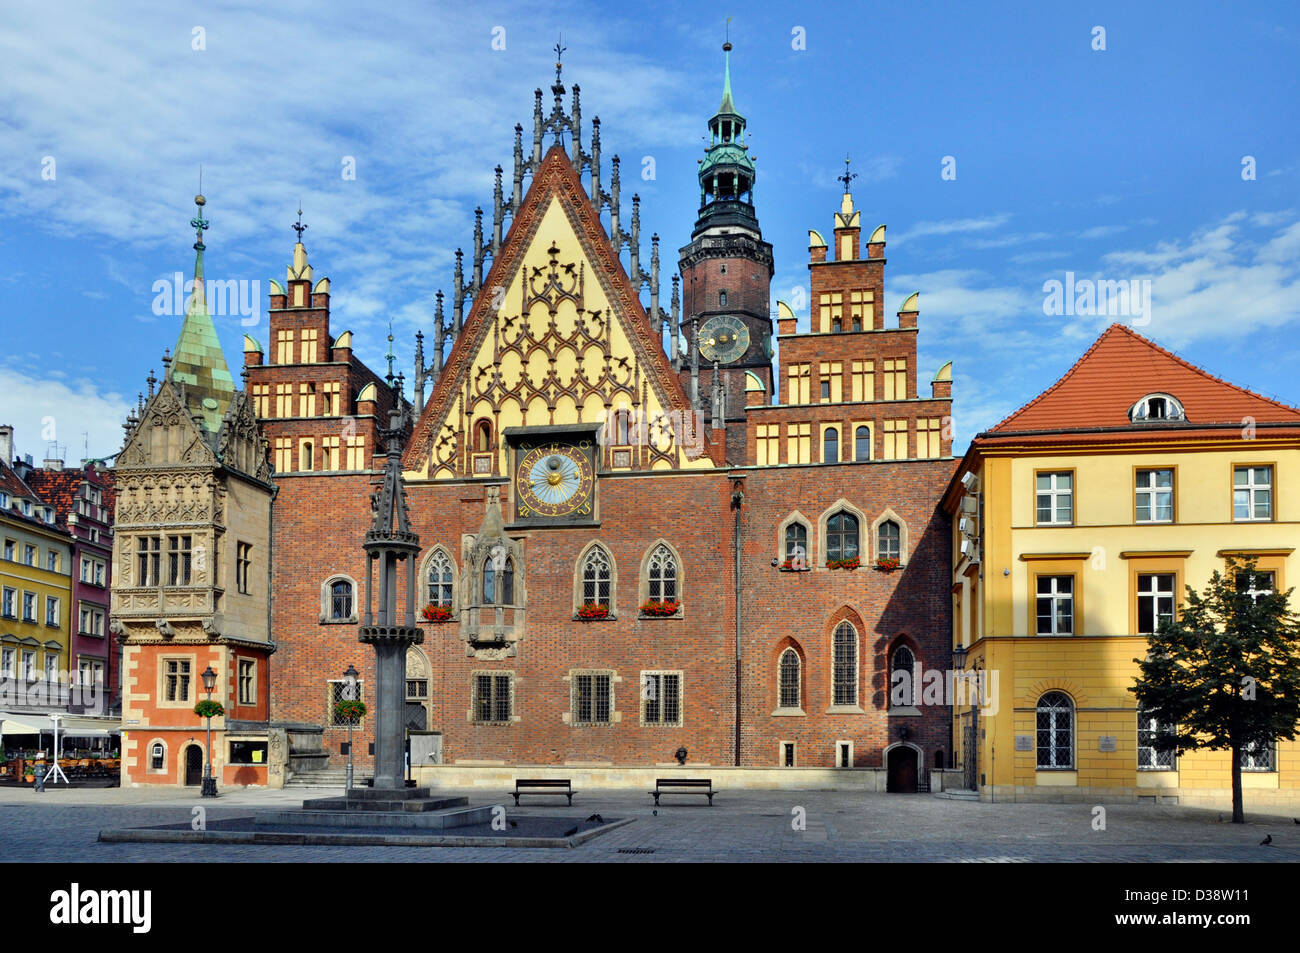 Old Gothic town hall in Wroclaw (Breslau) in Poland - Stock Image